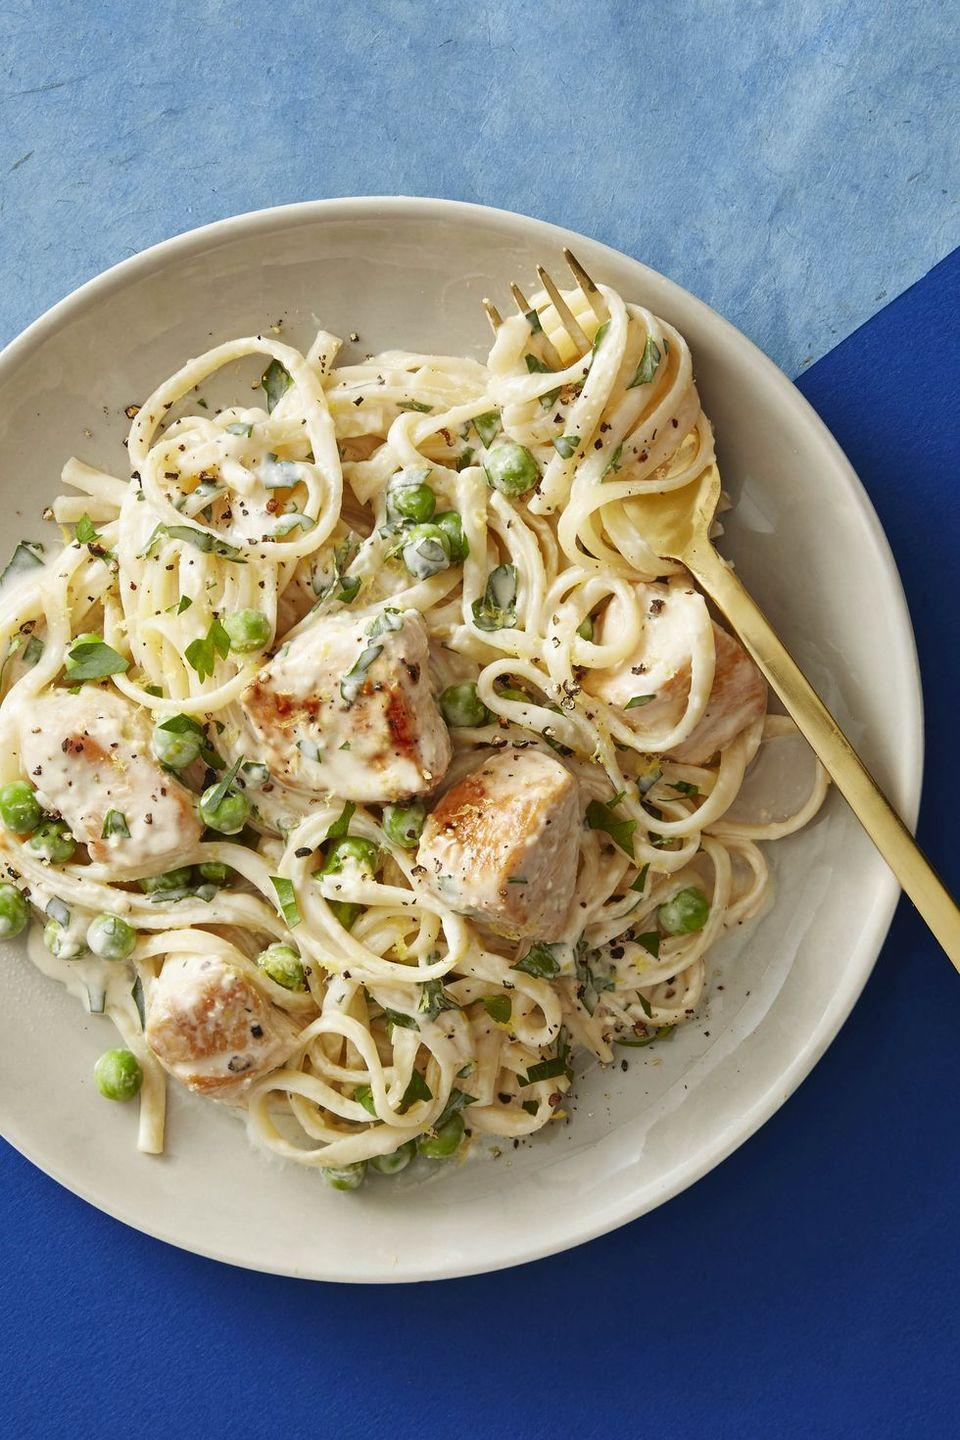 "<p>Liven up staples like chicken and linguine with a creamy tangy sauce of cream cheese and lemon.</p><p><em><a href=""https://www.goodhousekeeping.com/food-recipes/easy/a47534/creamy-lemon-chicken-pasta-recipe/"" rel=""nofollow noopener"" target=""_blank"" data-ylk=""slk:Get the recipe for Creamy Lemon Chicken Pasta »"" class=""link rapid-noclick-resp"">Get the recipe for Creamy Lemon Chicken Pasta »</a></em></p><p><strong>RELATED:</strong> <a href=""https://www.goodhousekeeping.com/food-recipes/easy/g2341/pasta-recipes-with-5-ingredients/"" rel=""nofollow noopener"" target=""_blank"" data-ylk=""slk:50+ Easy Pasta Recipes for the Perfect Weeknight Dinner"" class=""link rapid-noclick-resp"">50+ Easy Pasta Recipes for the Perfect Weeknight Dinner</a><br></p>"